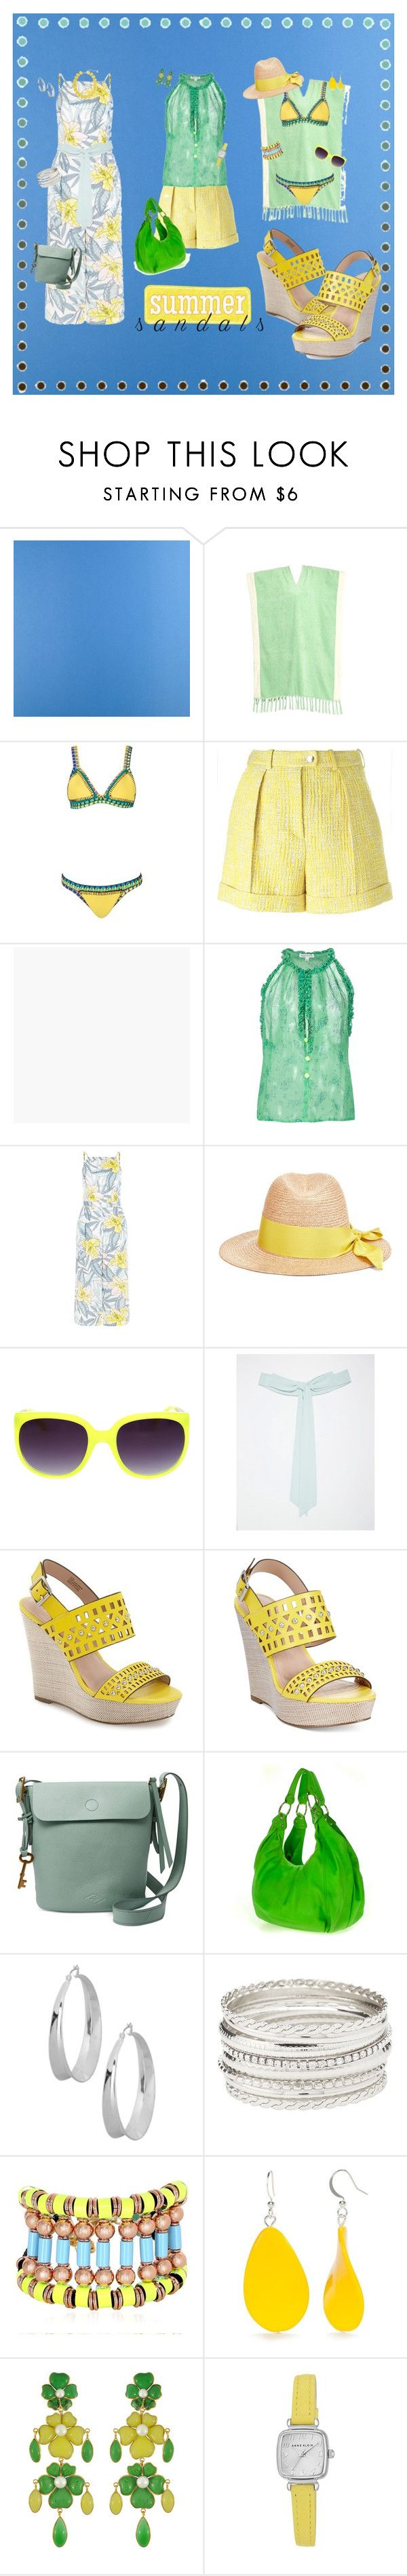 """All Summer Long"" by kbarkstyle ❤ liked on Polyvore featuring Designers Guild, Lisa Marie Fernandez, WithChic, Carven, Graham & Brown, Poupette St Barth, New Look, Federica Moretti, TFNC and Charles by Charles David"